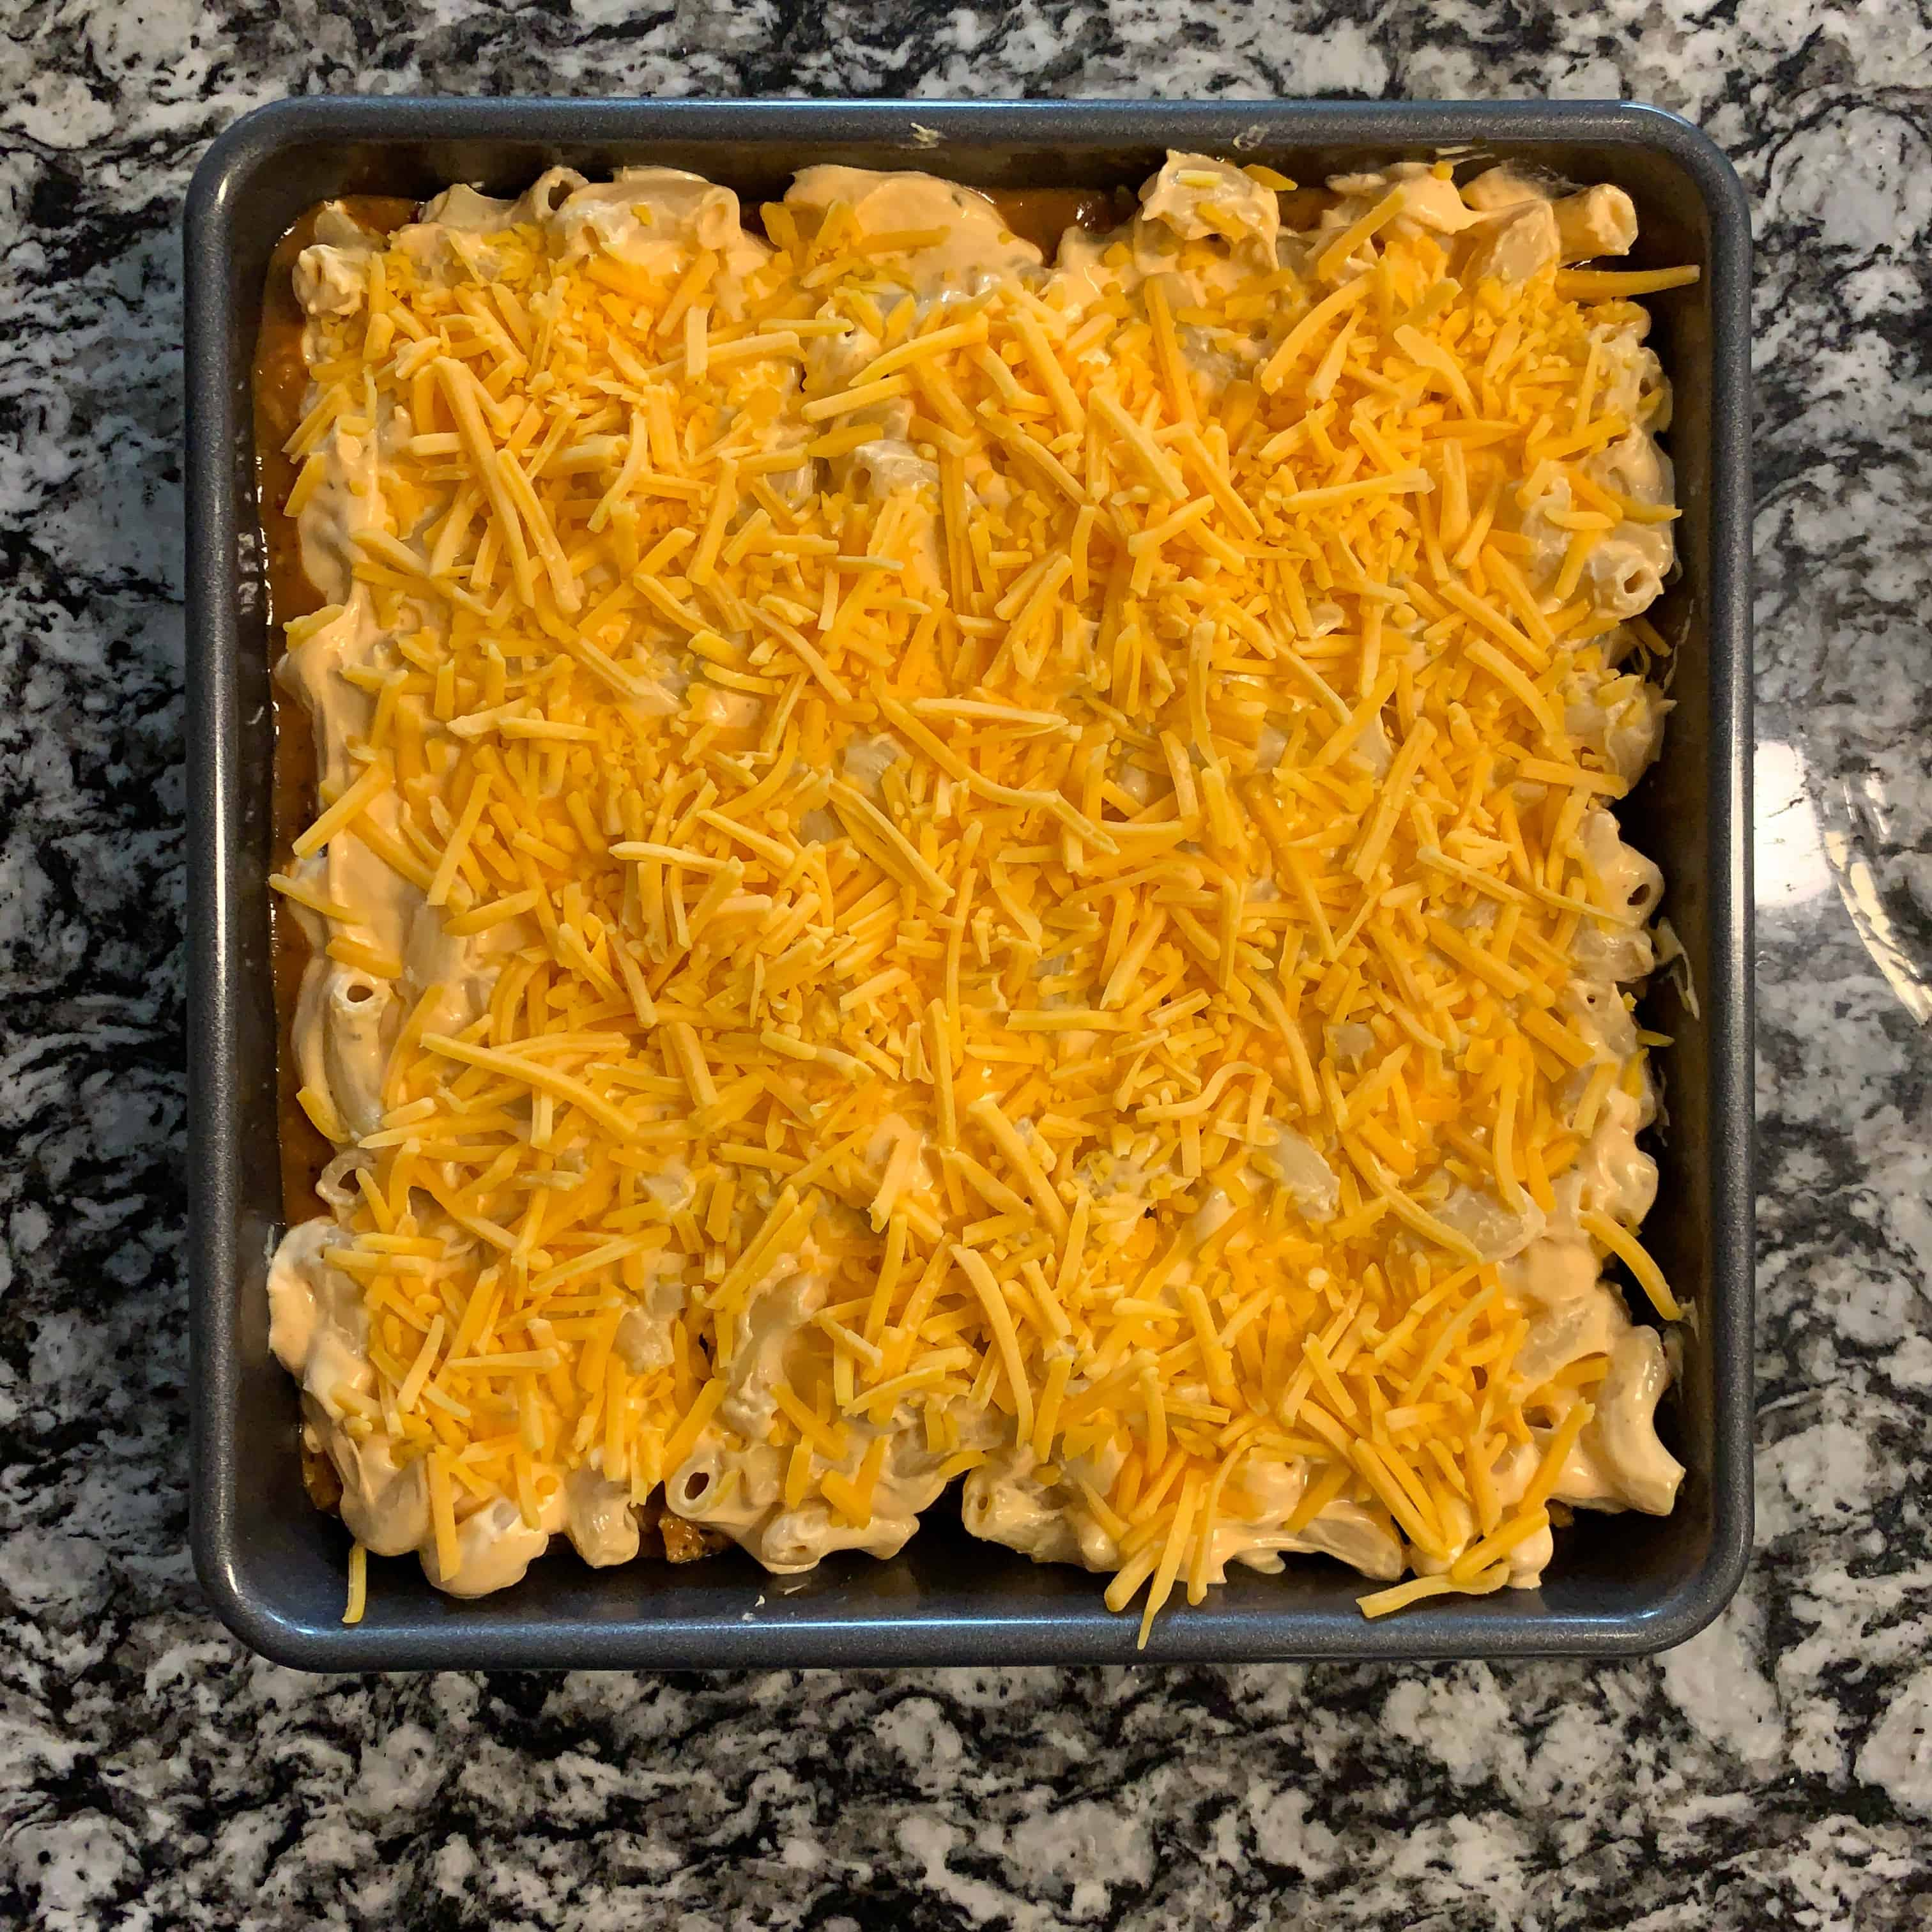 shredded cheddar on top of the low calorie mac and cheese bake